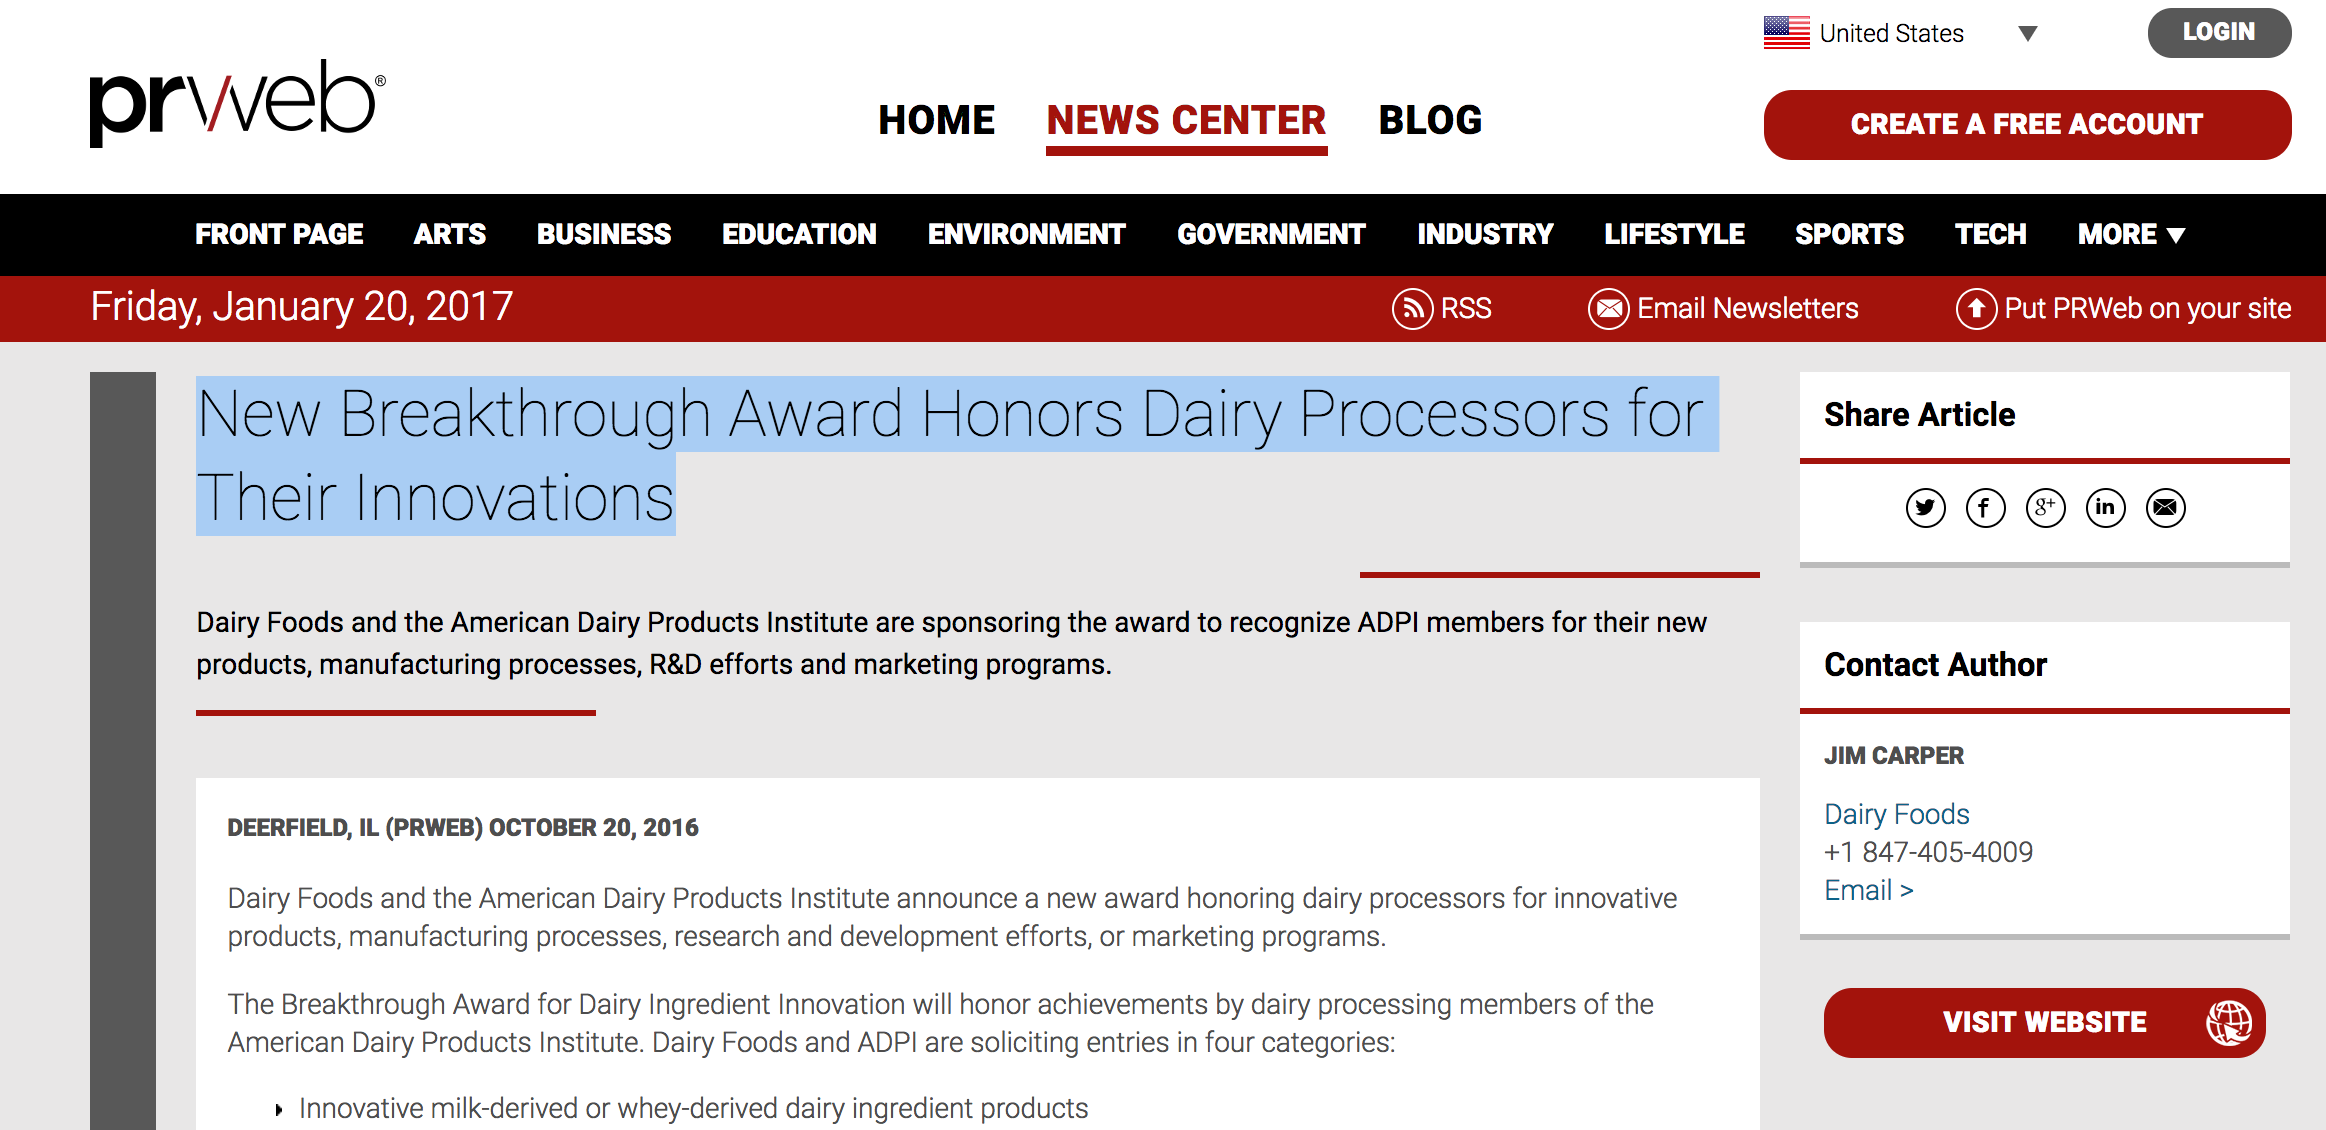 New Breakthrough Award Honors Dairy Processors for Their Innovations.